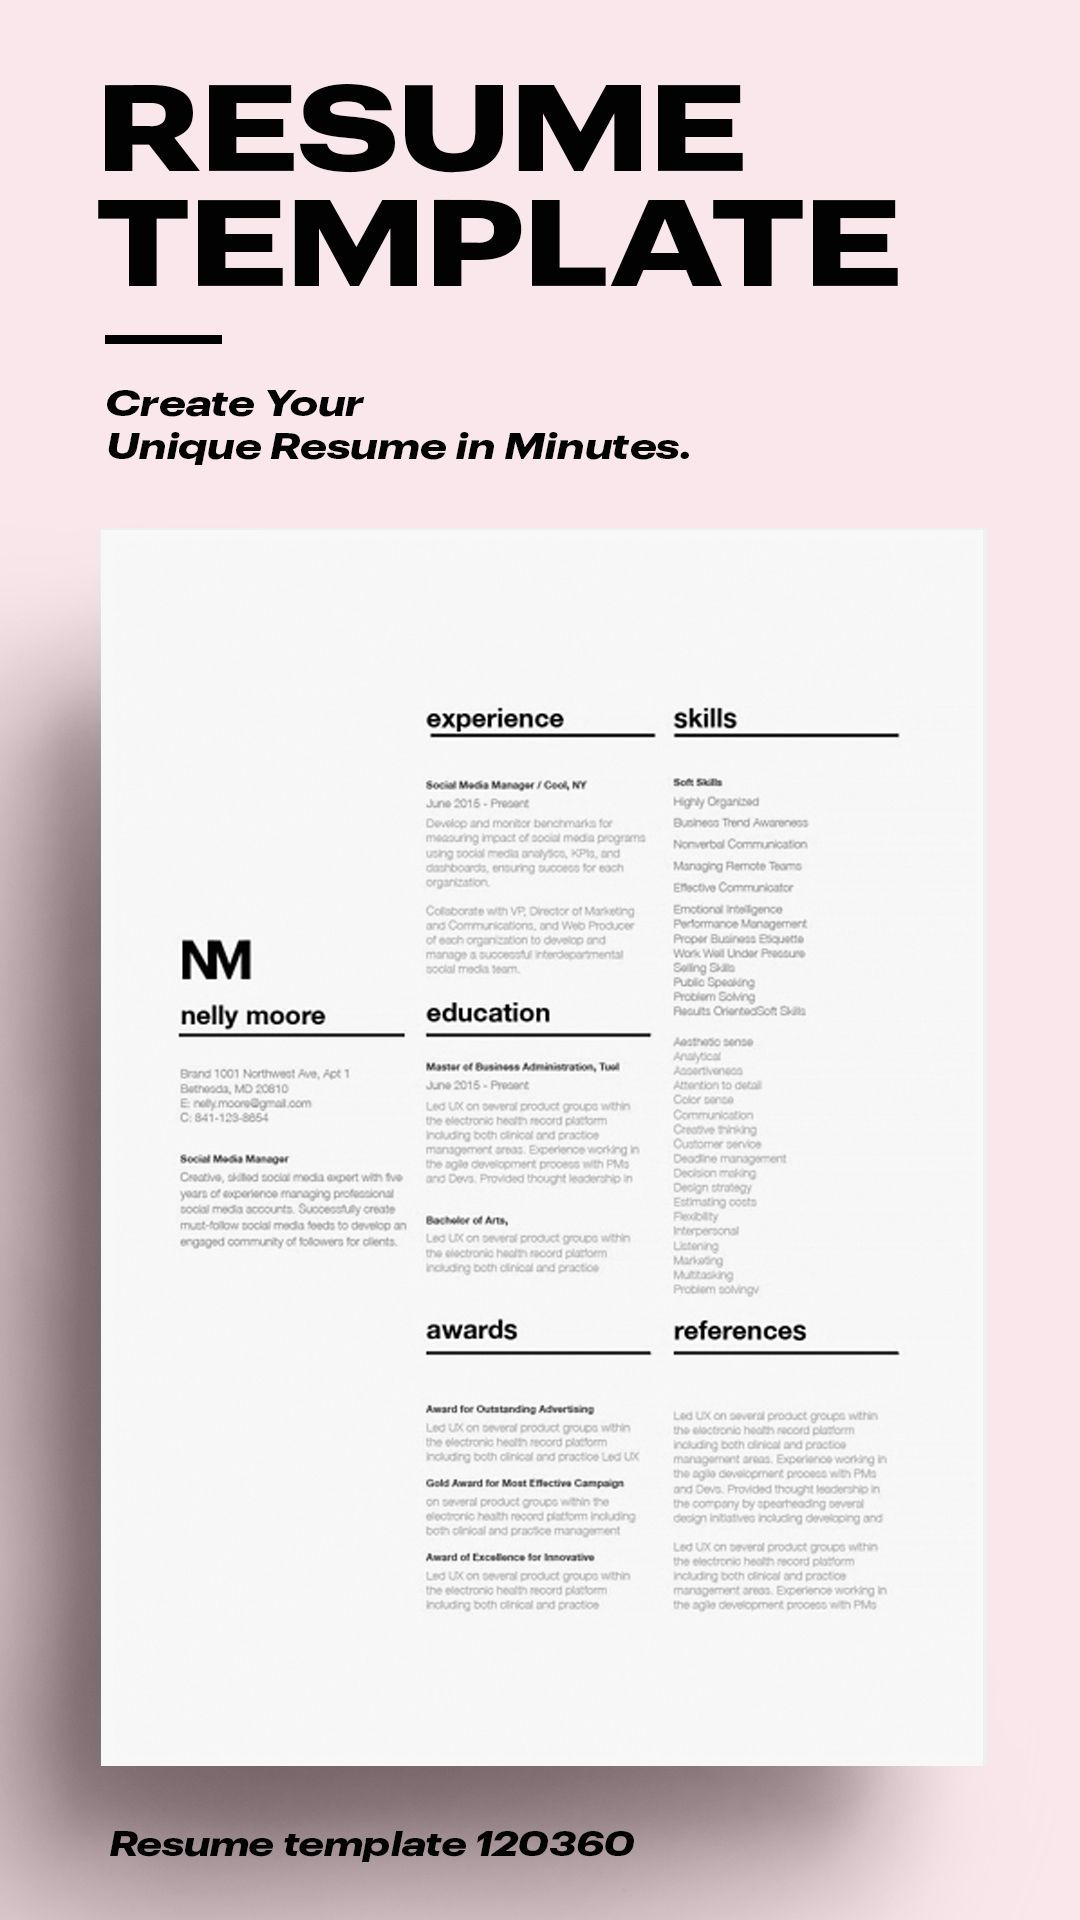 Resume Template 120360, MS Word, Apple Pages Create your